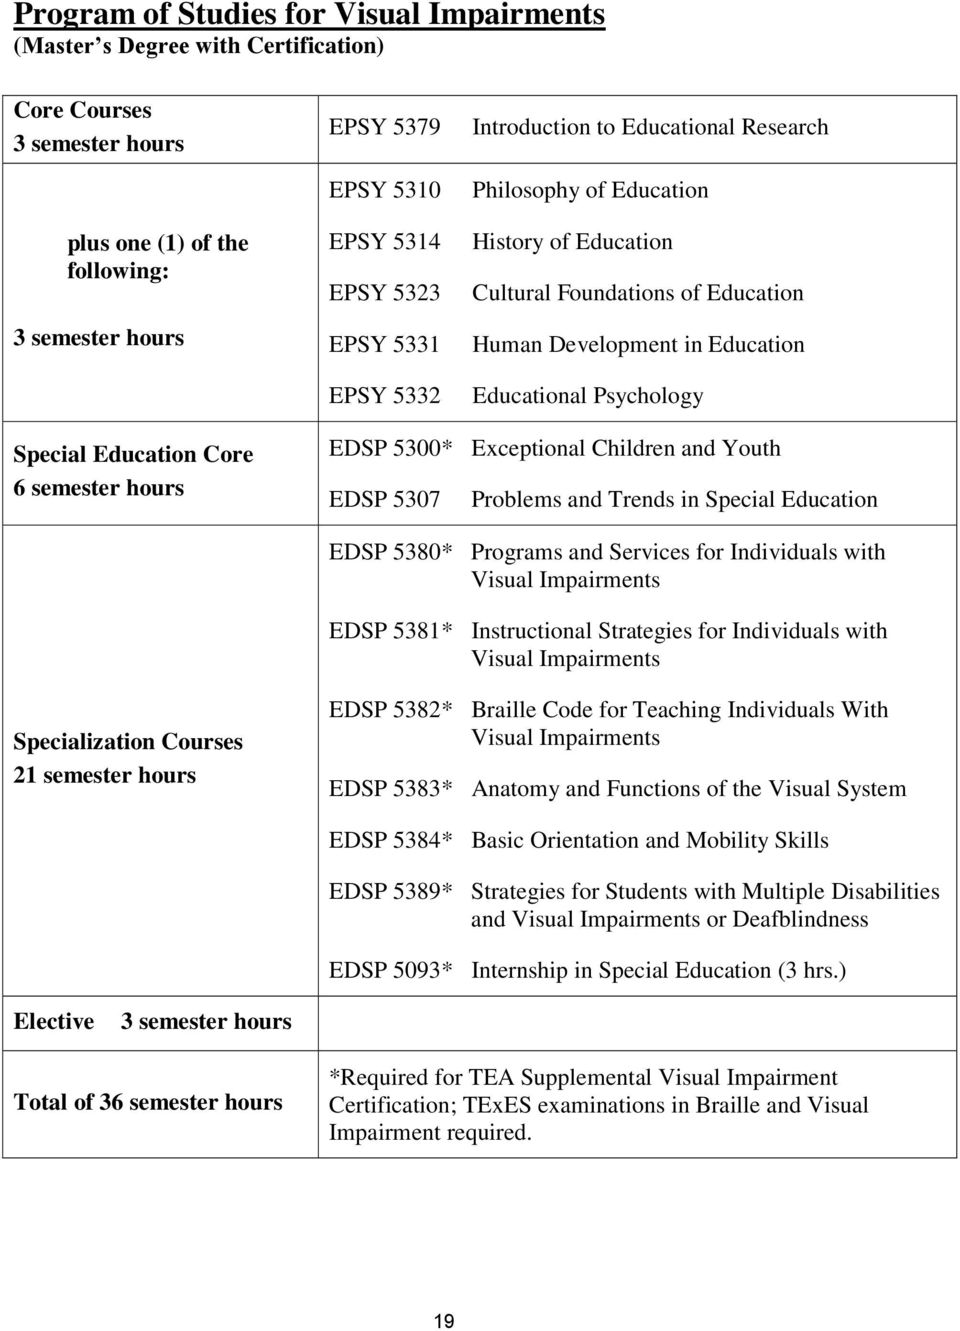 Education Core 6 semester hours EDSP 5300* Exceptional Children and Youth EDSP 5307 Problems and Trends in Special Education EDSP 5380* Programs and Services for Individuals with Visual Impairments